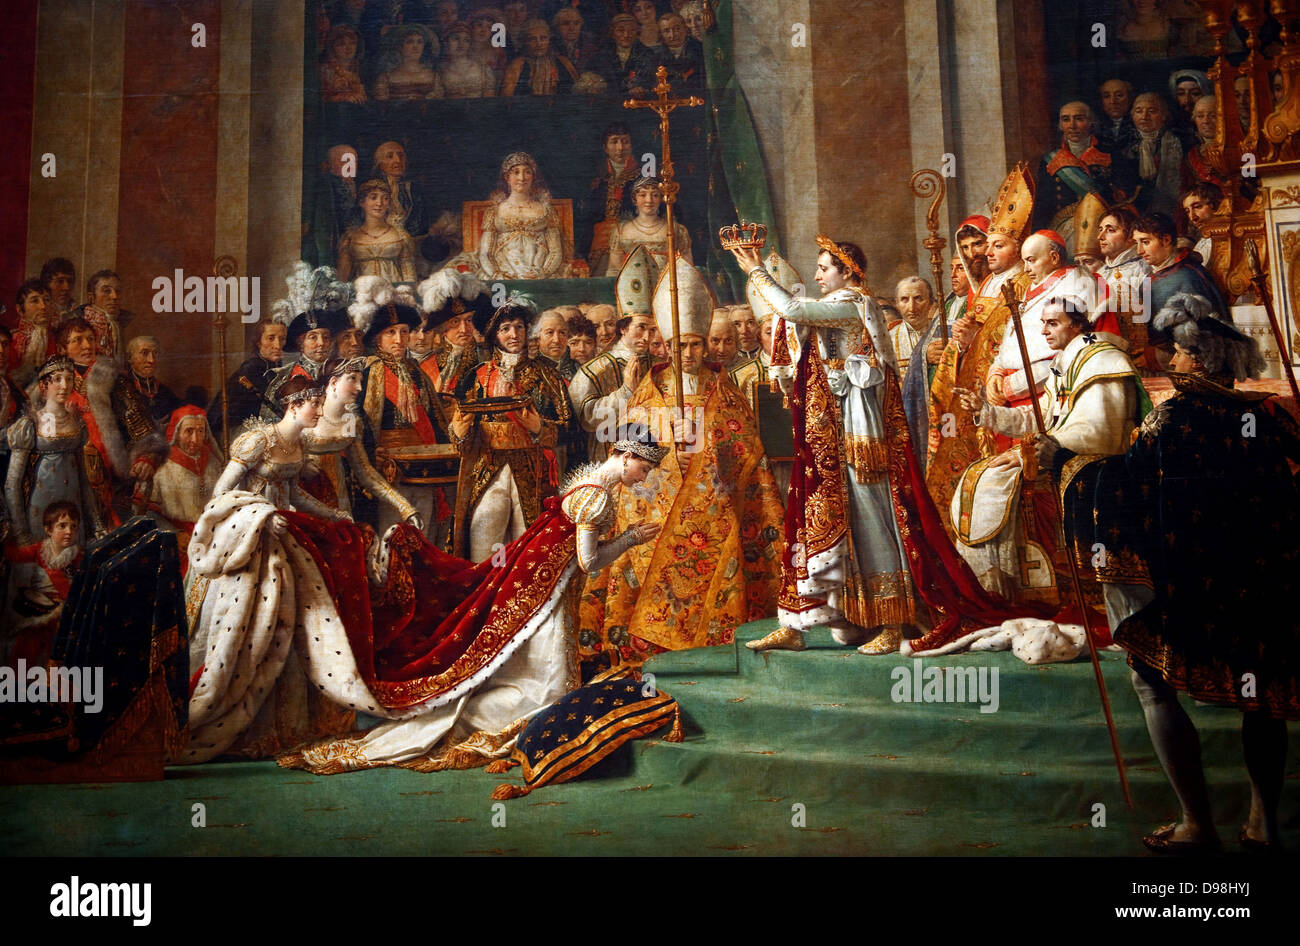 'The Coronation of Napoleon' painting completed in 1807 by Jacques-Louis  David, the official painter of Napoleon. The painting